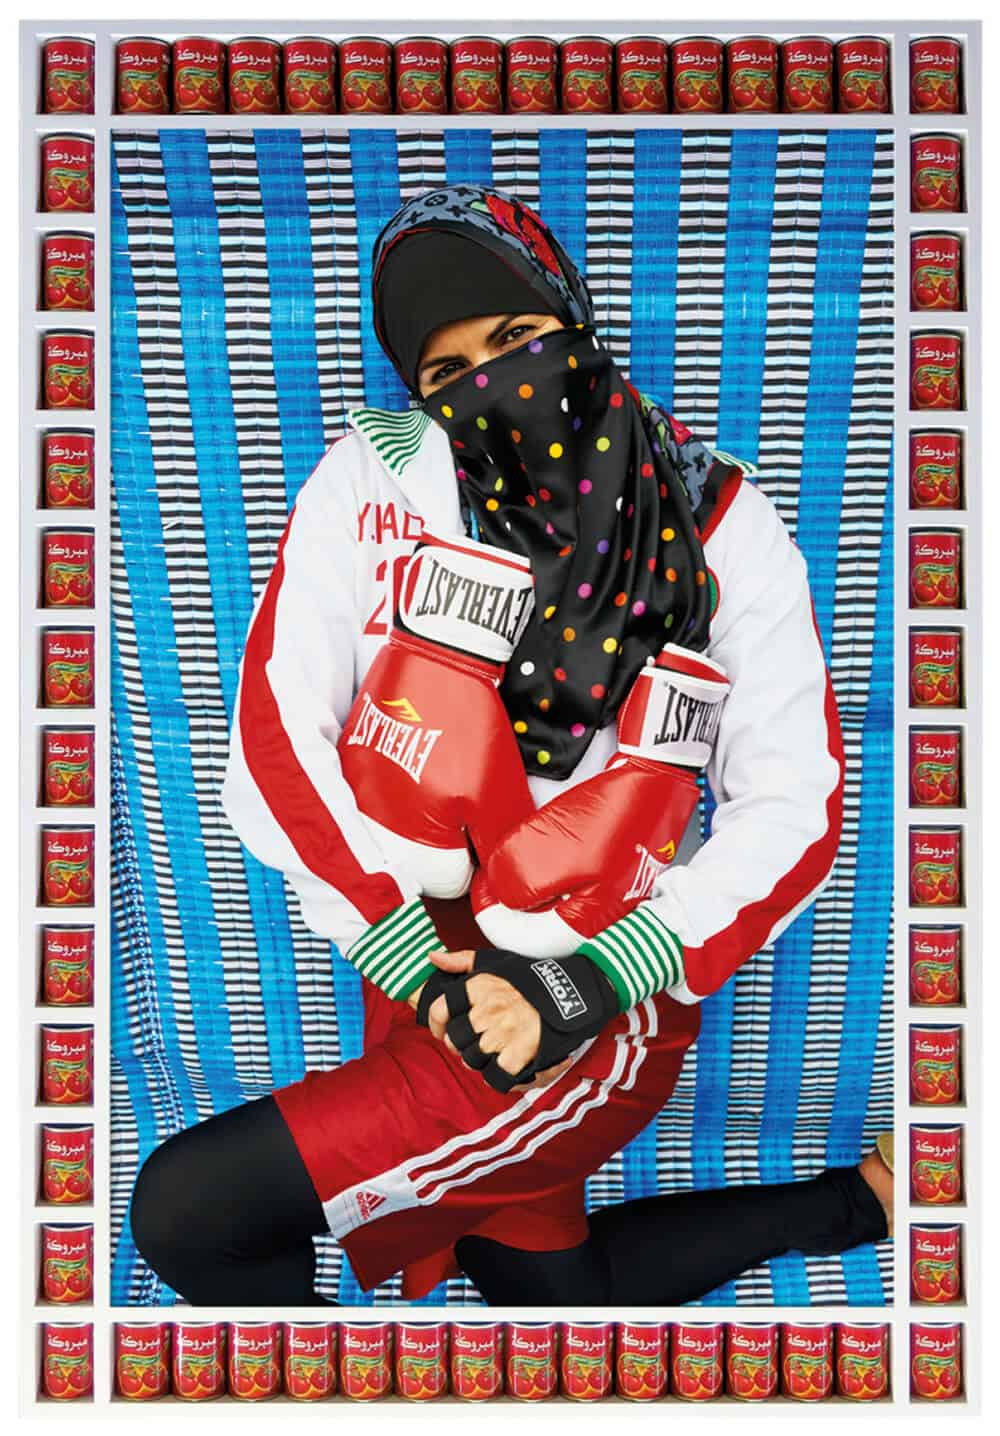 Hassan Hajjaj, Pose, 2011. Edition of 10. Courtesy of the Third Line.